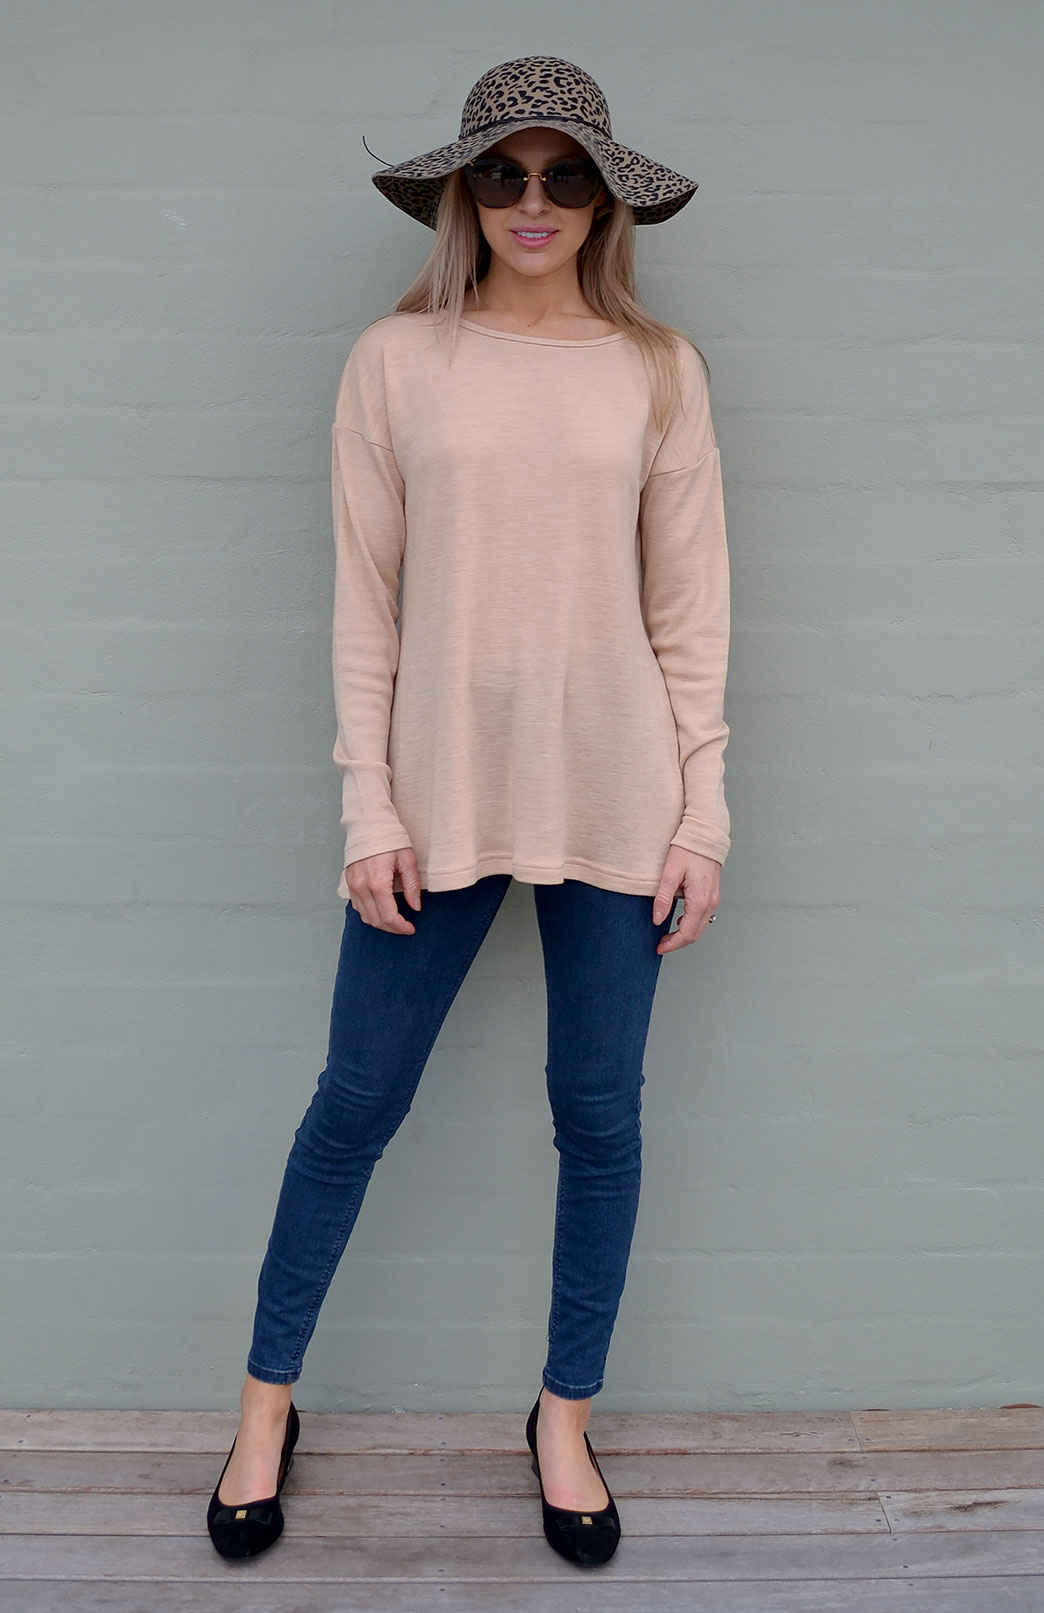 Ella Boat Neck Top - Women's Long Sleeve Boat Neck Top - Smitten Merino Tasmania Australia